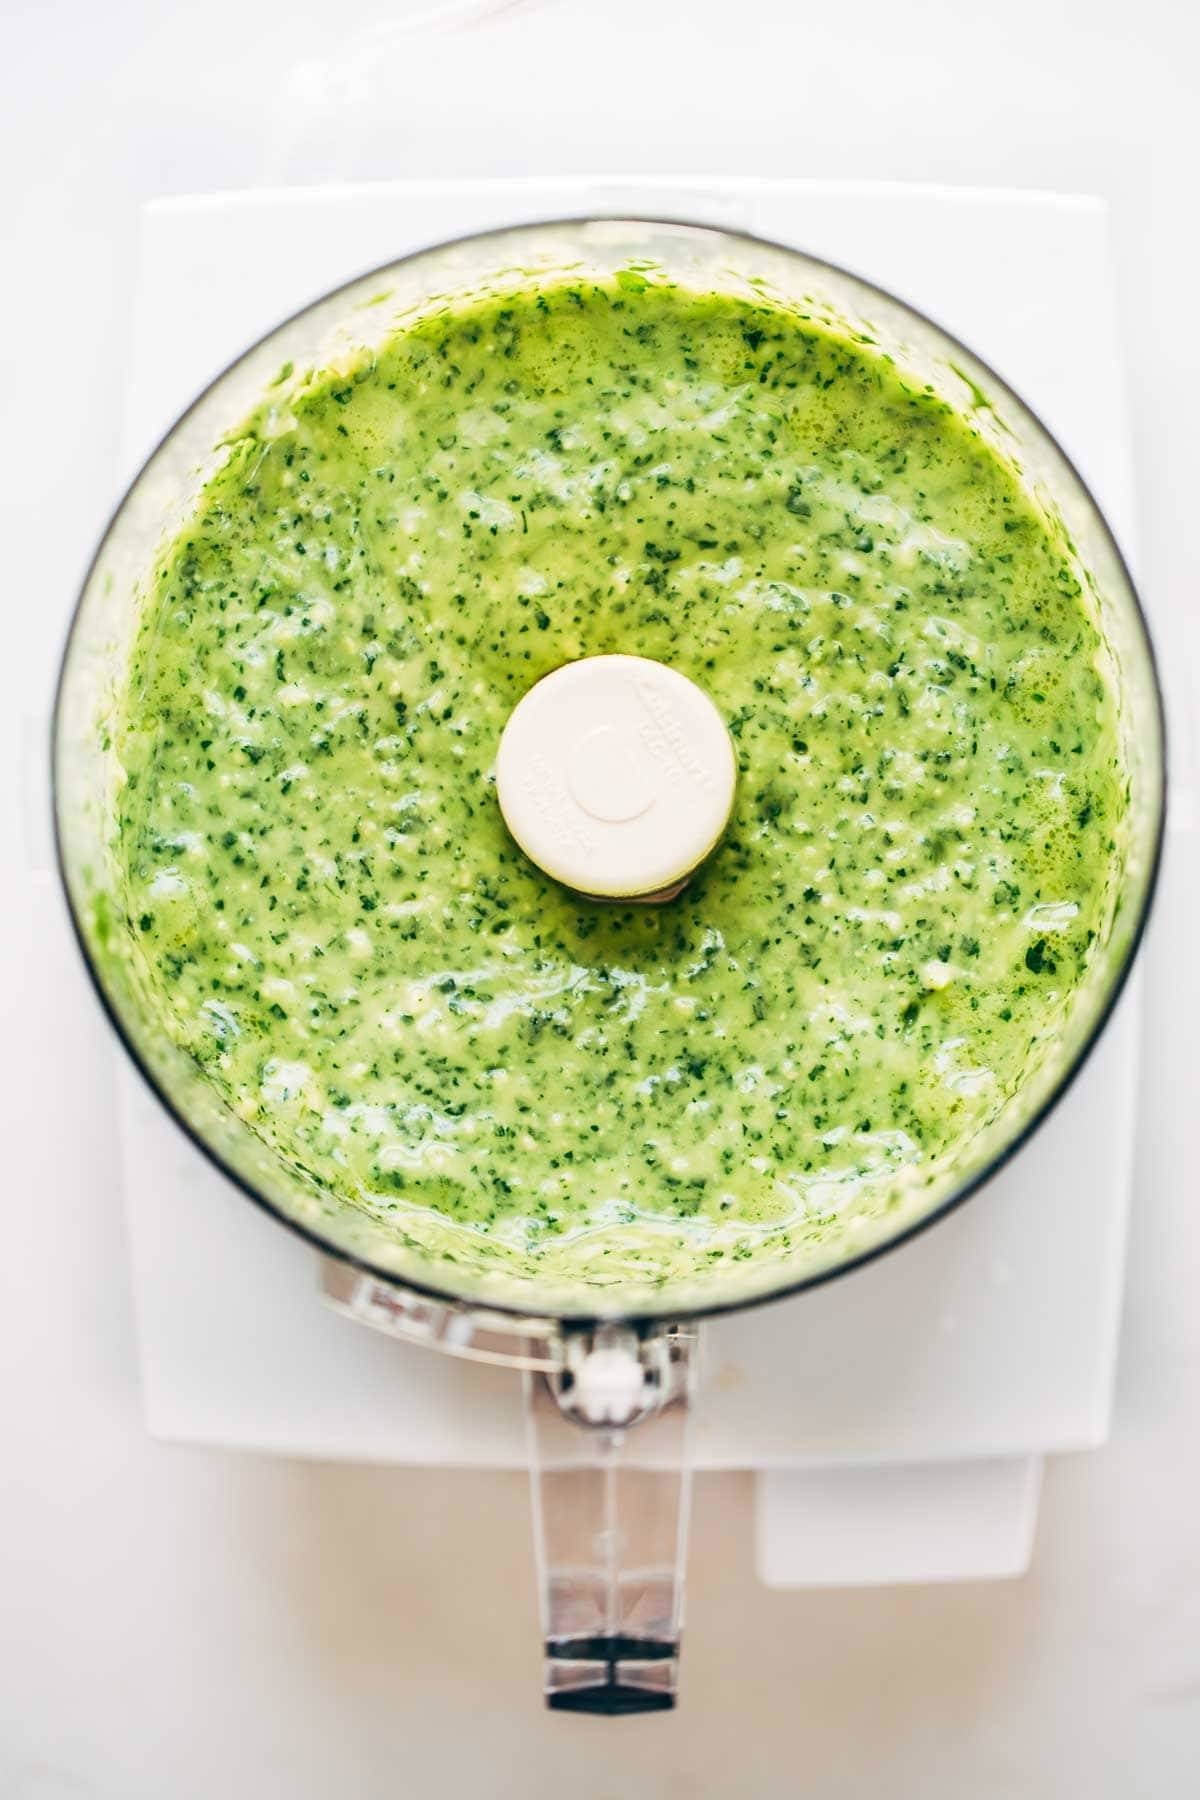 Green sauce in a food processor.